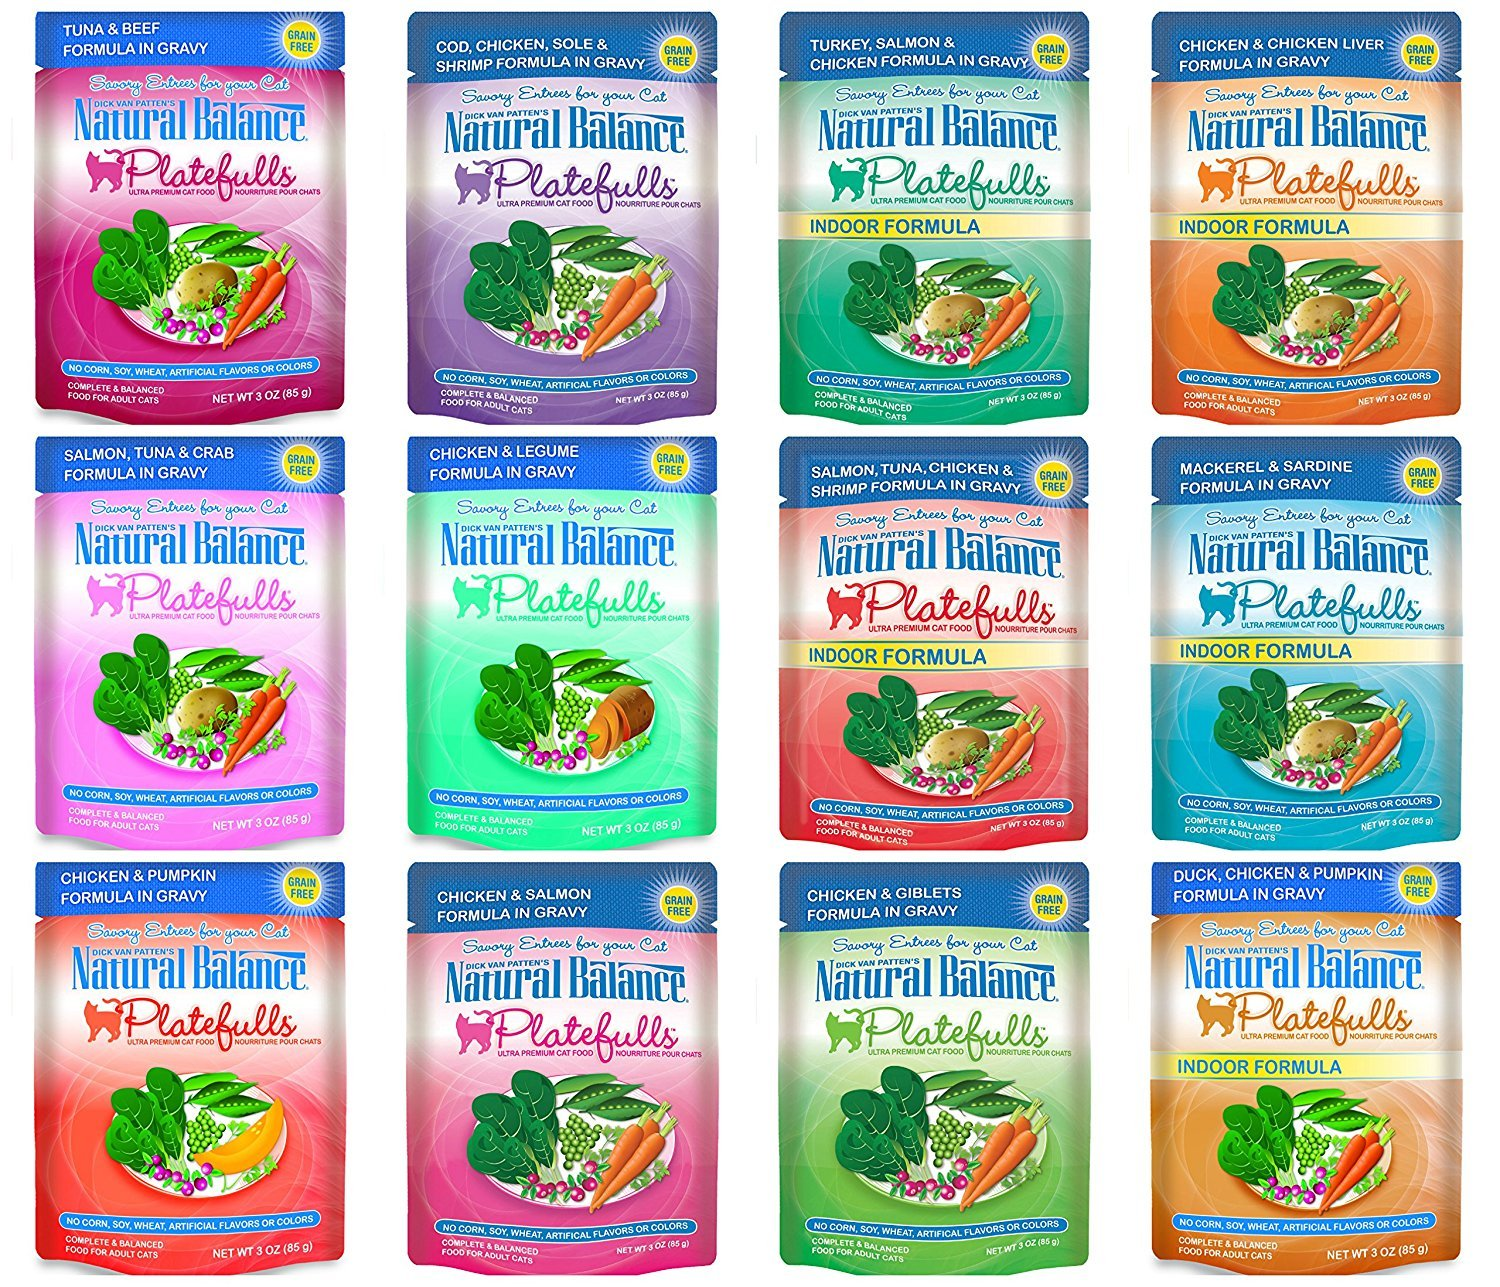 Dick van Patten's Natural Balance Grain-Free Platefulls Indoor and Regular Formula Cat Food 12 Flavor Variety Bundle, 3 Ounces Each (12 Pouches Total) by Natural Balance